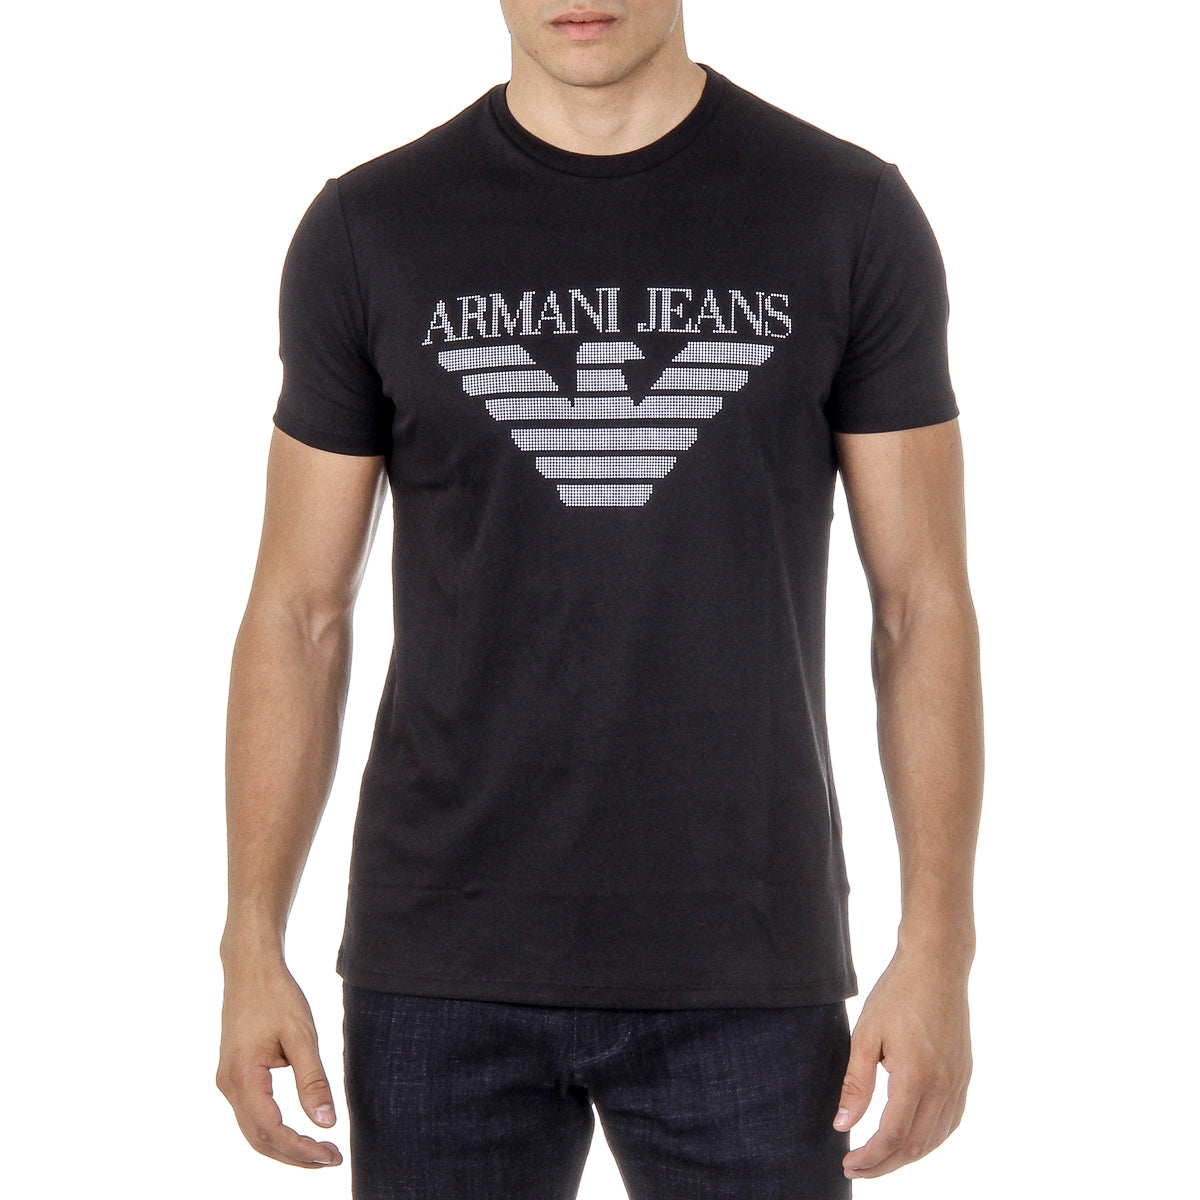 Black t shirt armani - Armani Jeans Mens T Shirt Short Sleeves Round Neck Black 3y6t52 6jprz 1200